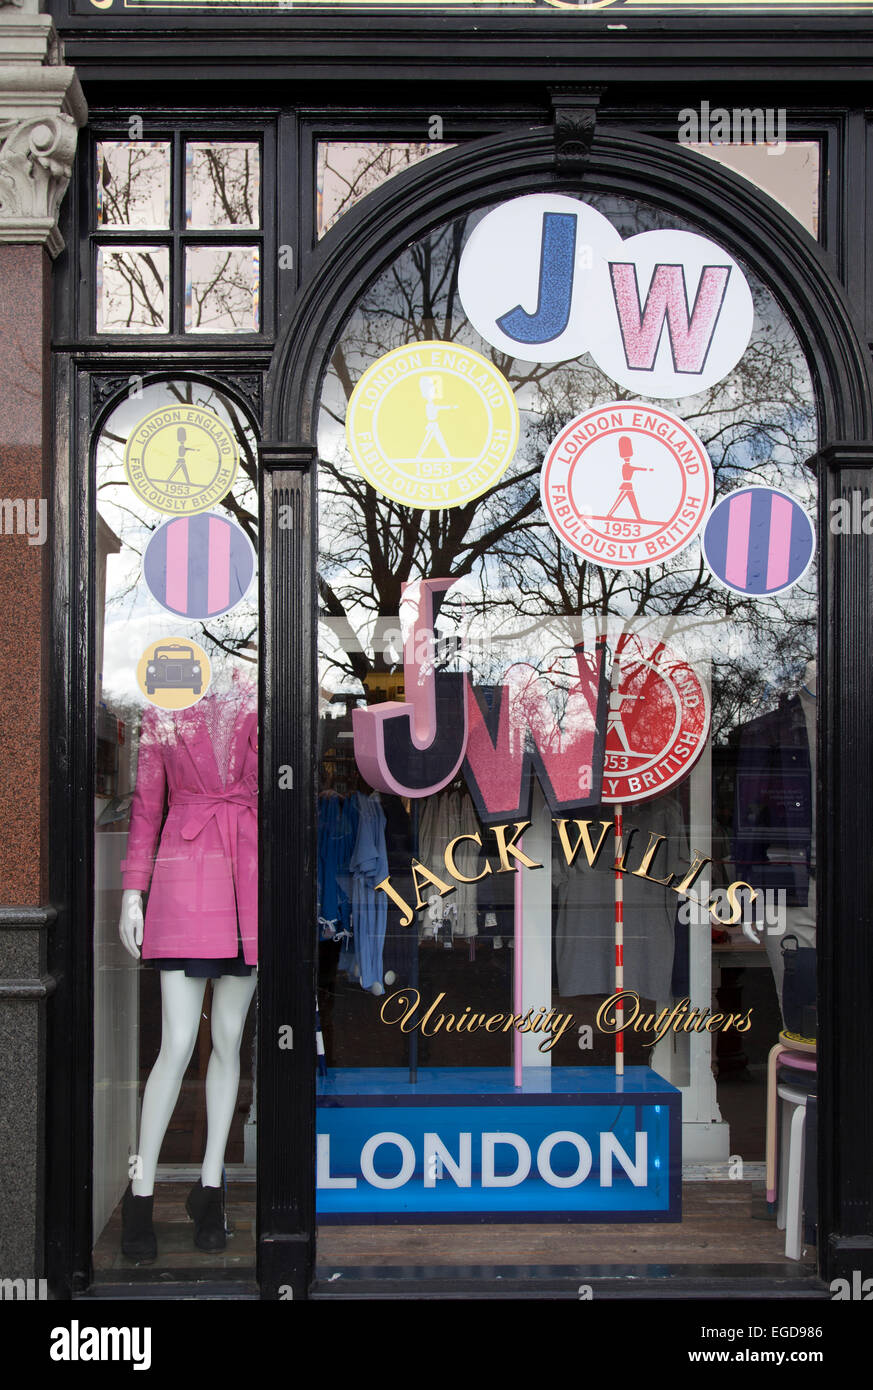 Jack Wills Retail Front on King's Rd - London UK - Stock Image